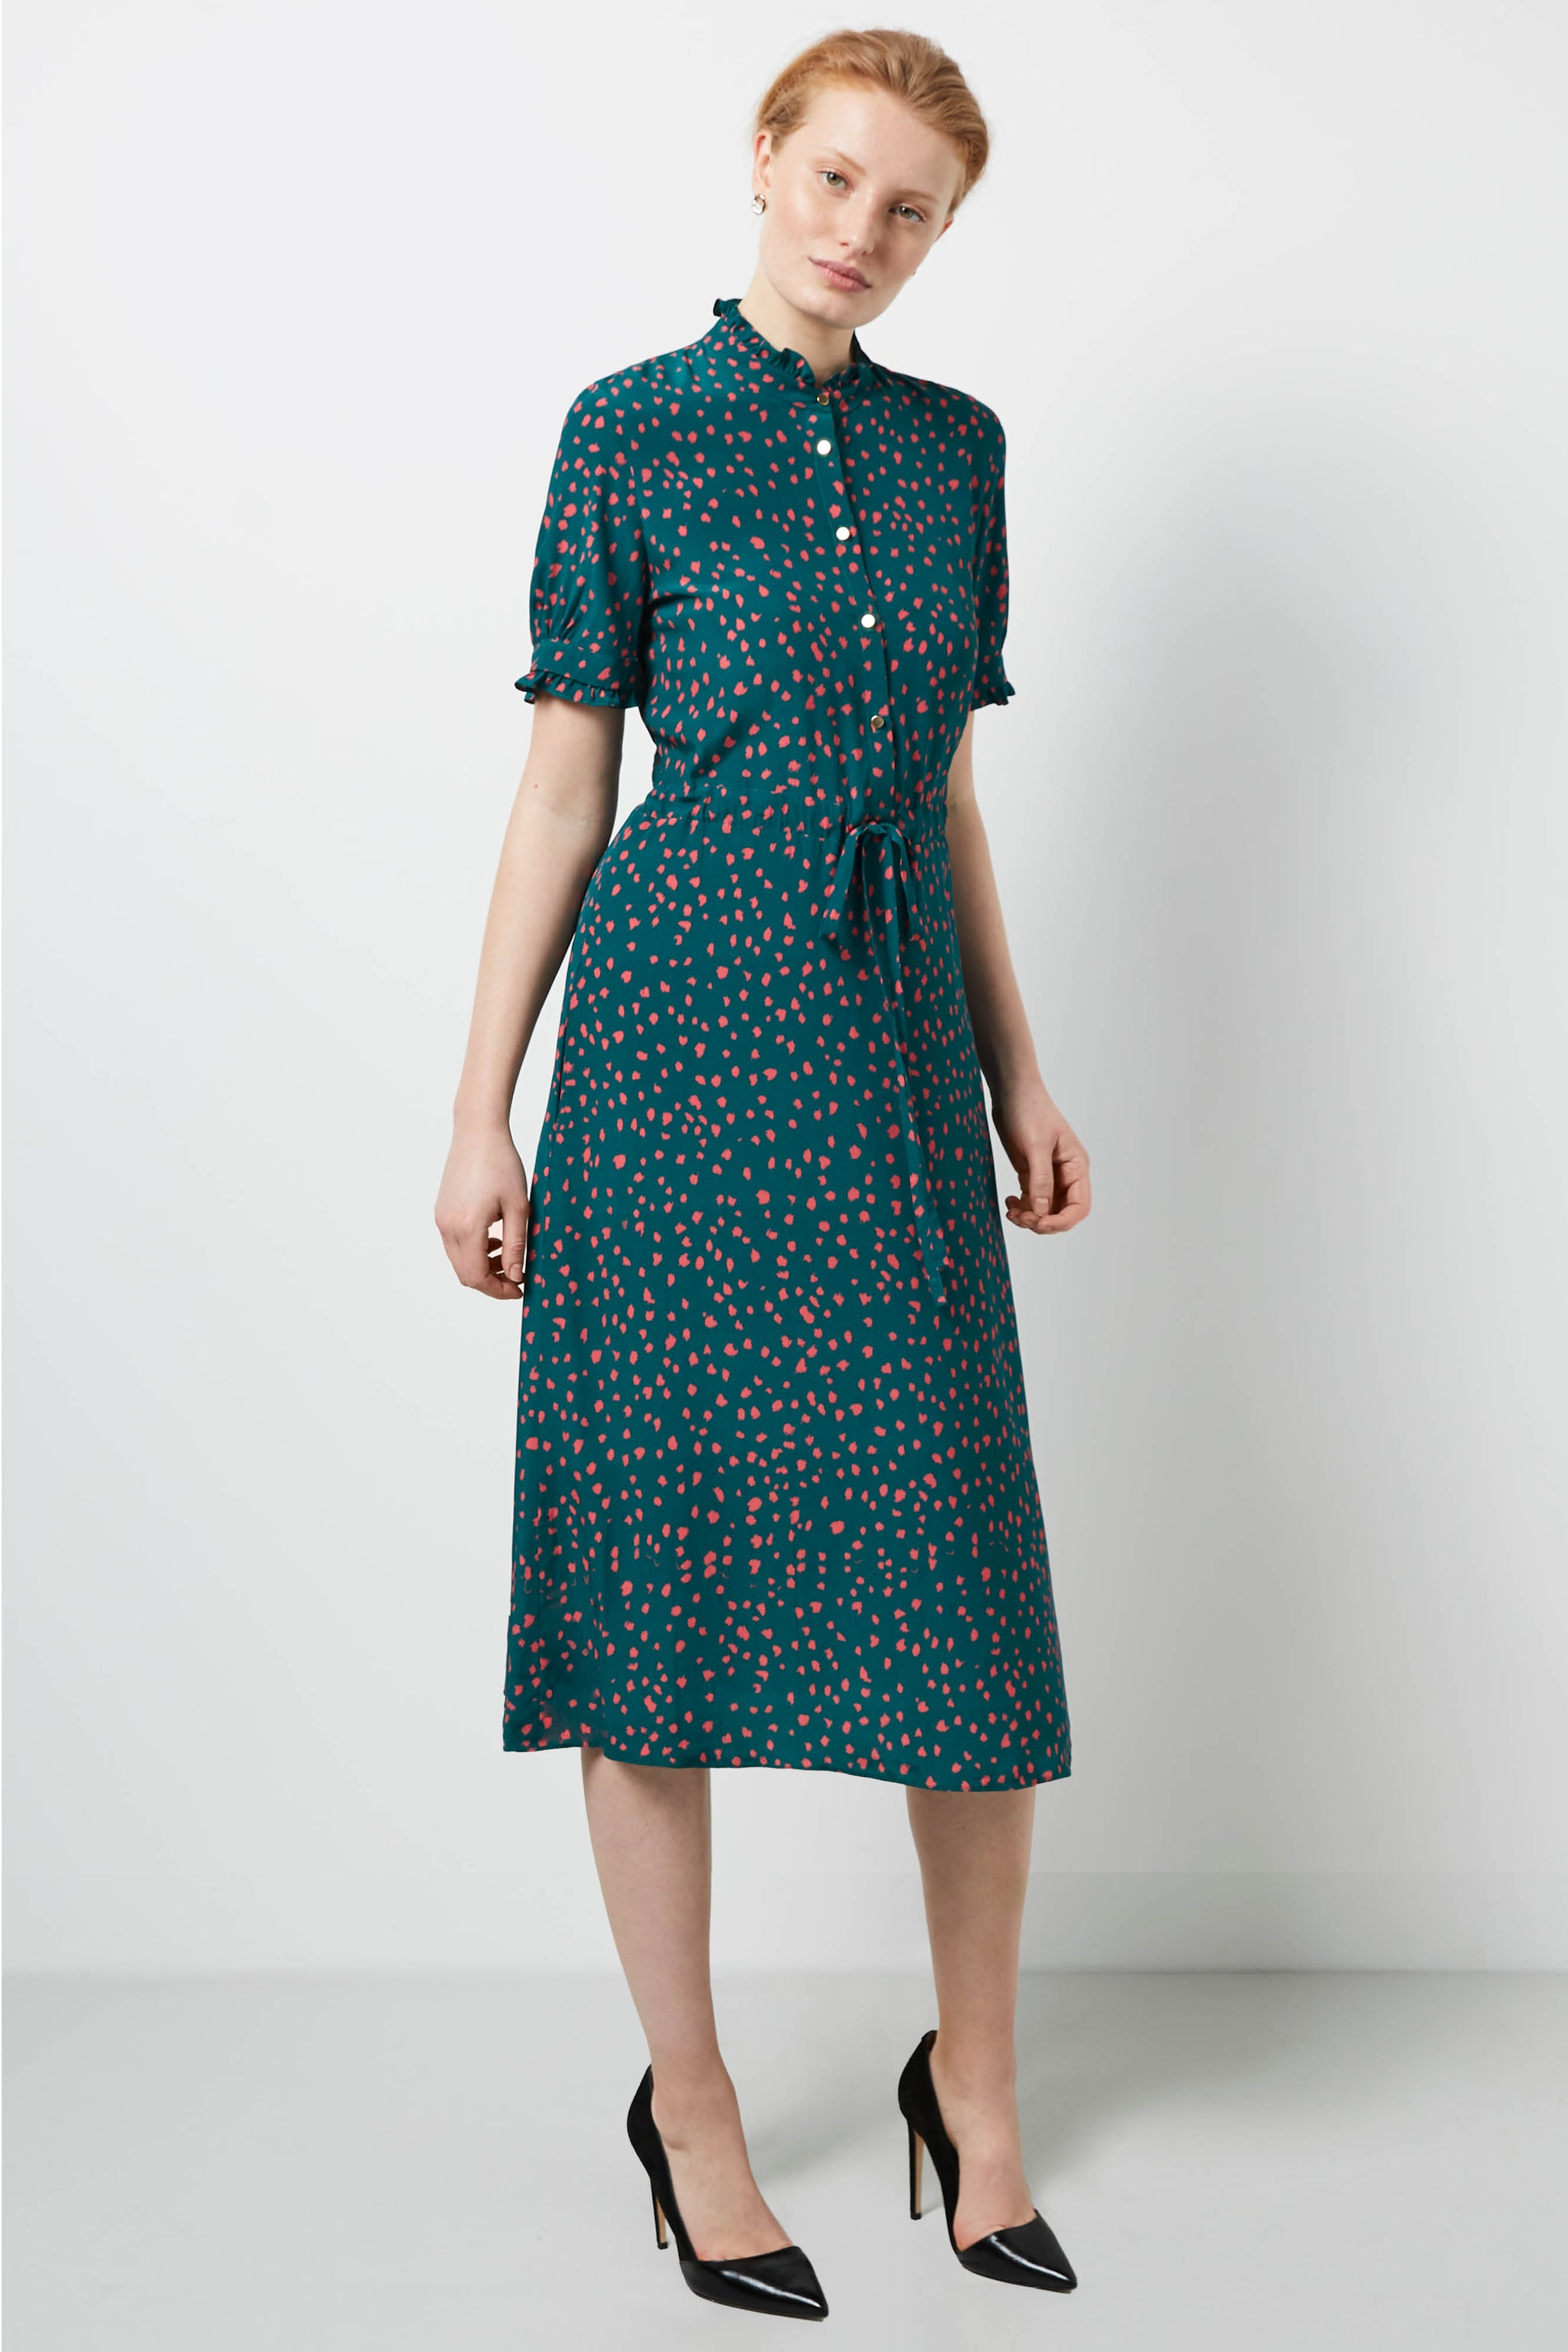 Canterbury Green Dapple Dress